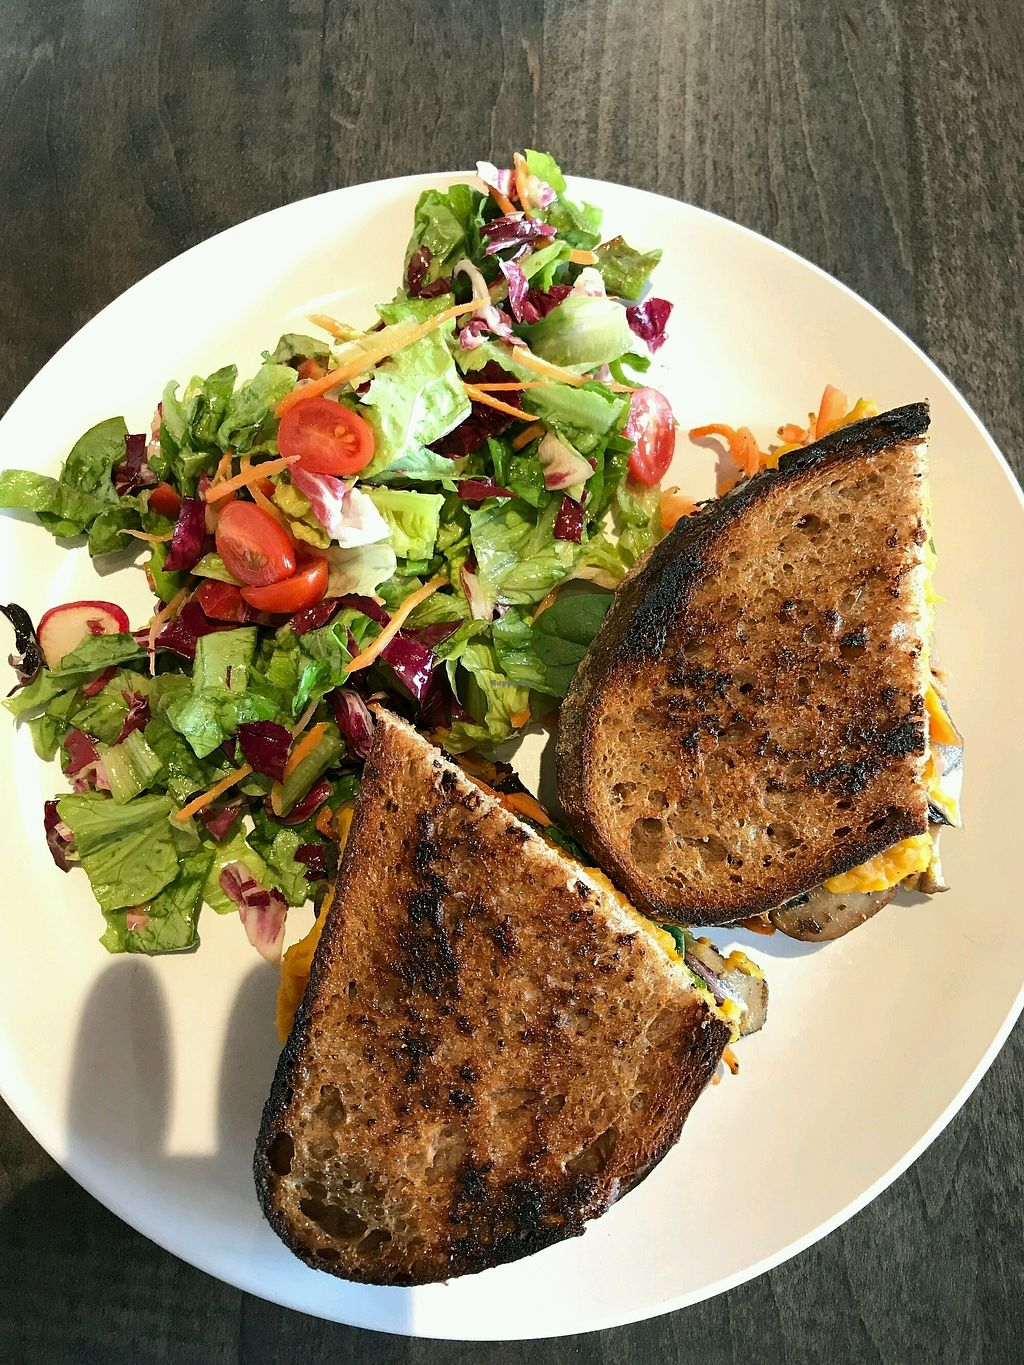 """Photo of Field & Fire Cafe  by <a href=""""/members/profile/AthenaTrombly"""">AthenaTrombly</a> <br/>The Sasquash: Butternut squash hummus, roasted veggies and fresh greens on 4 grain sourdough  <br/> February 25, 2018  - <a href='/contact/abuse/image/82257/363758'>Report</a>"""